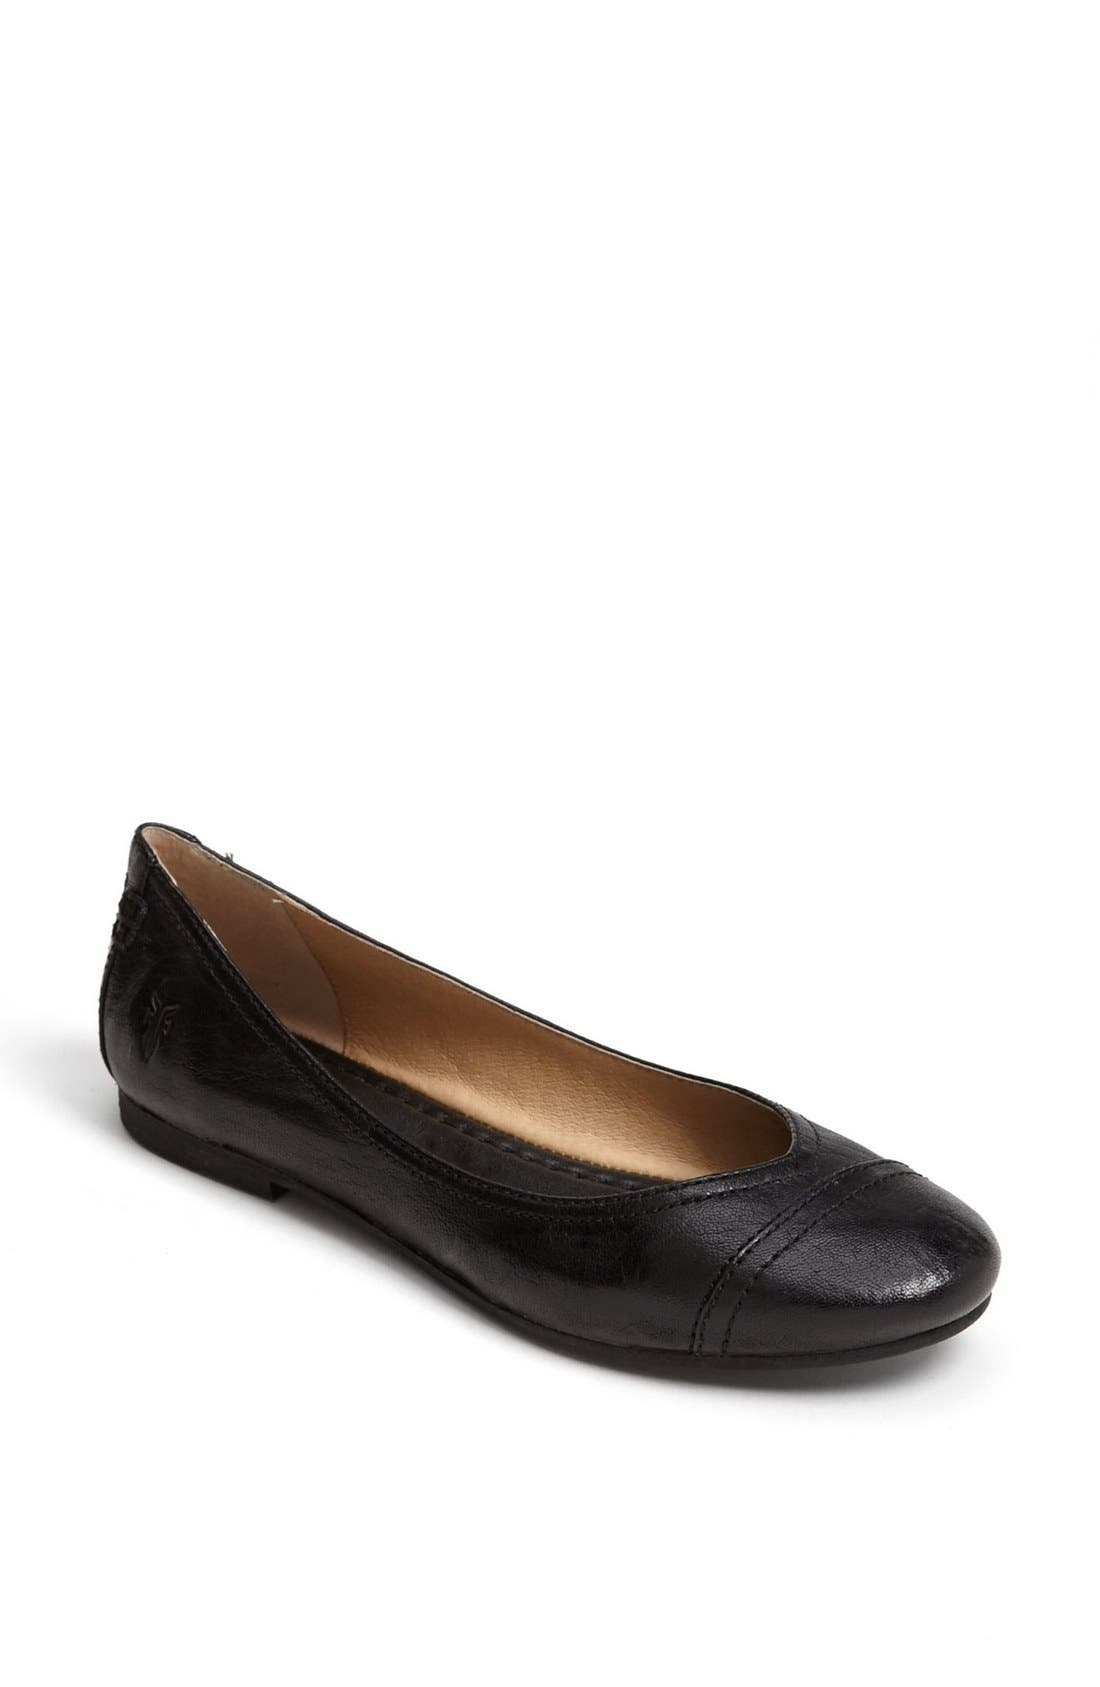 Alternate Image 1 Selected - Frye 'Carson' Cap Toe Ballet Flat